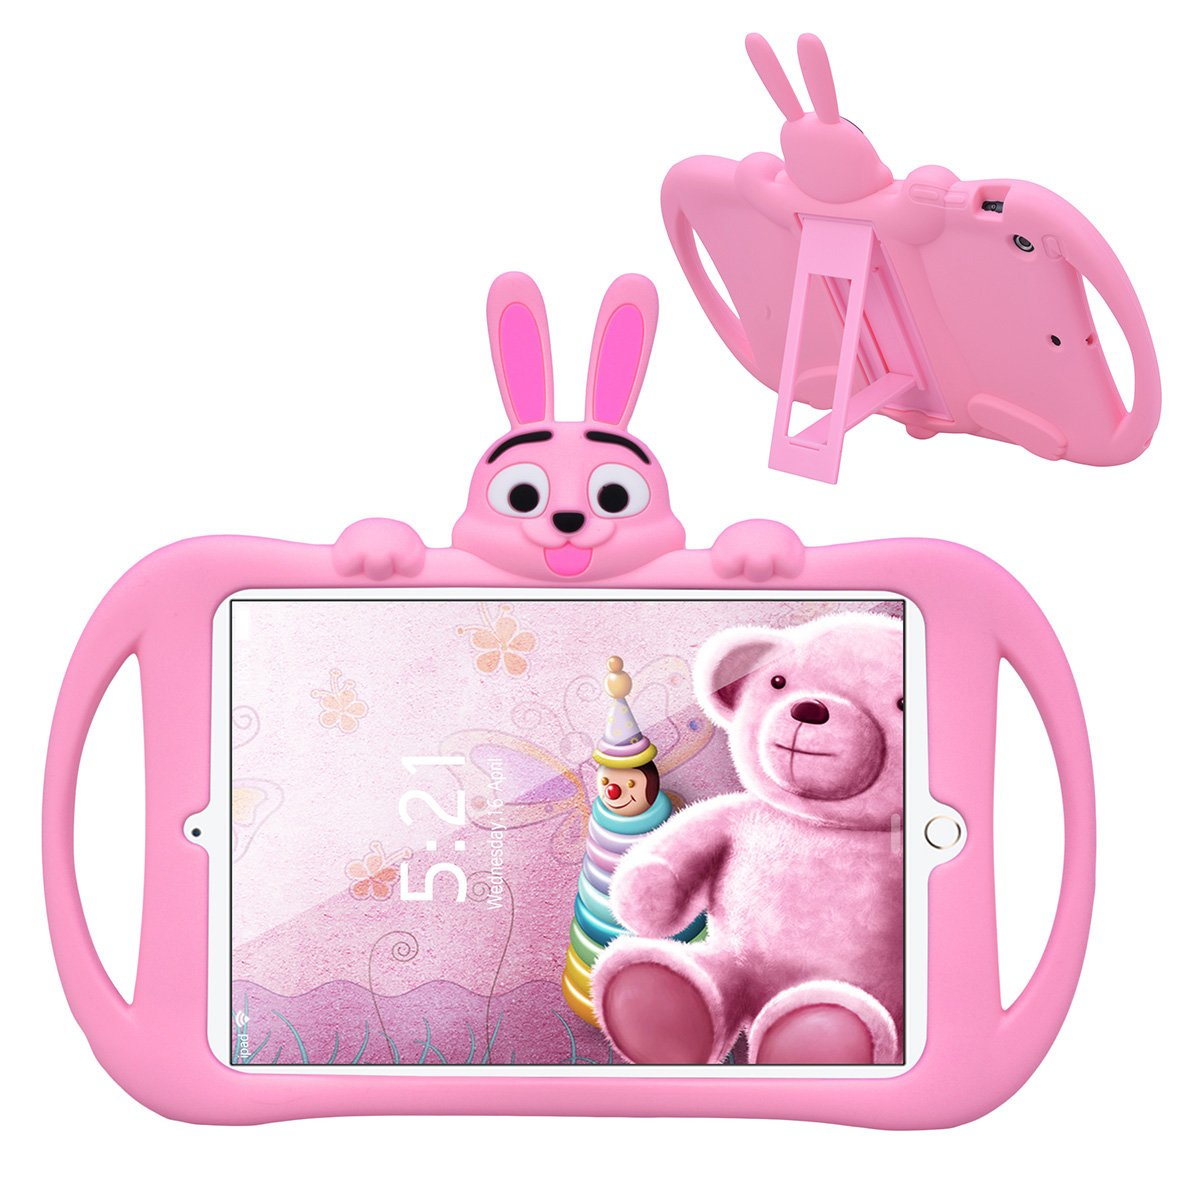 iPad Mini 1 2 3 Case, Dexnor Cute Rabbit Soft Waterproof Impact Resistant Protective Rubber Silicone Tablet Cover with Kickstand & Handle [Kid Safe] for iPad Mini/Mini 2 / Mini 3 - Pink